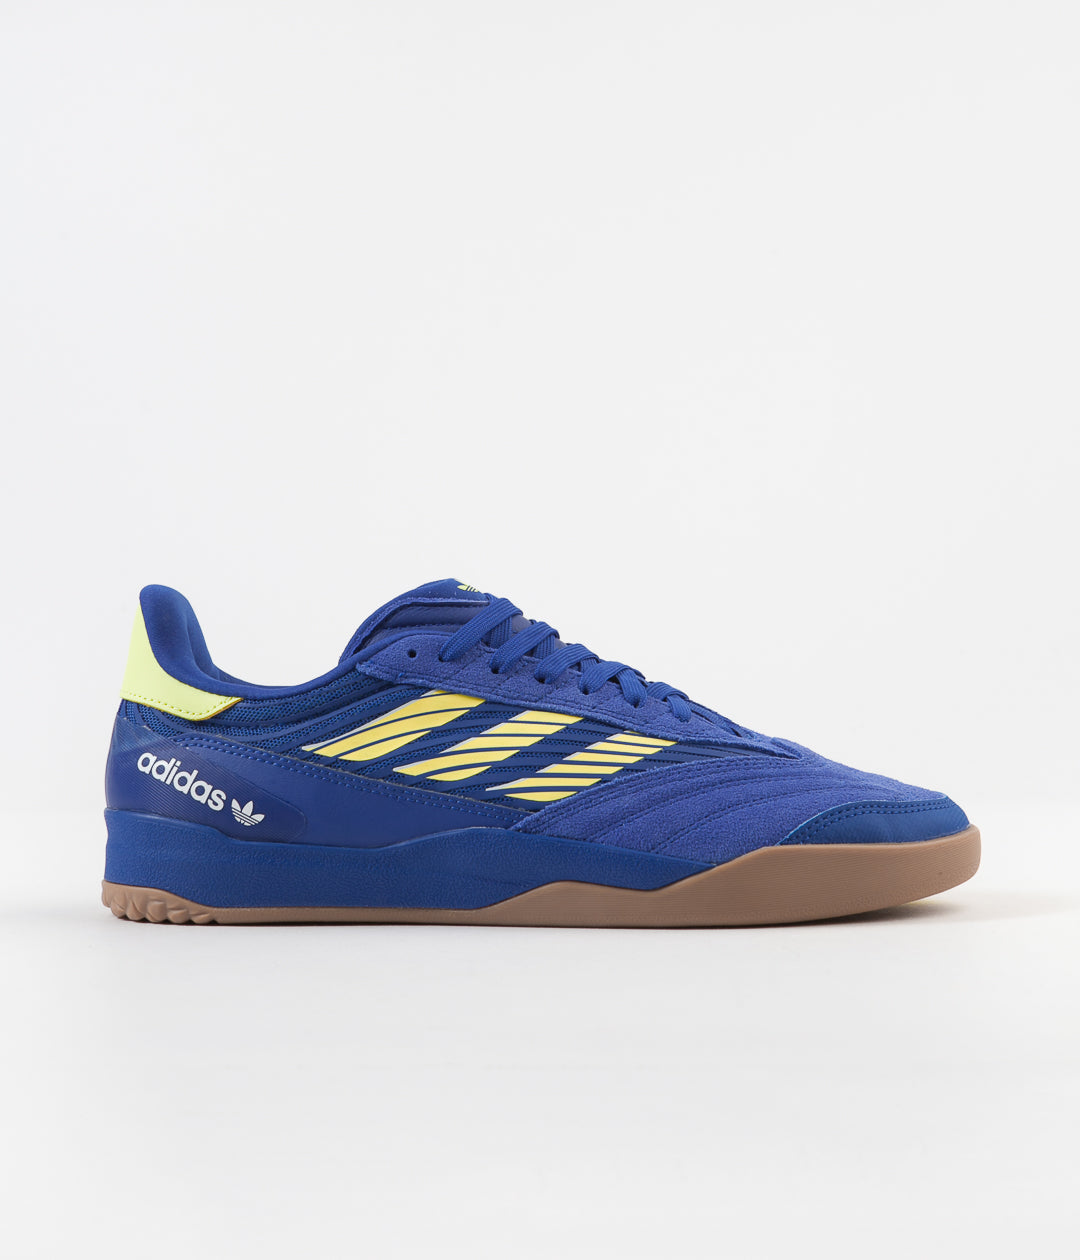 Adidas Copa Nationale Shoes - Team Royal Blue / Yellow Tint / White